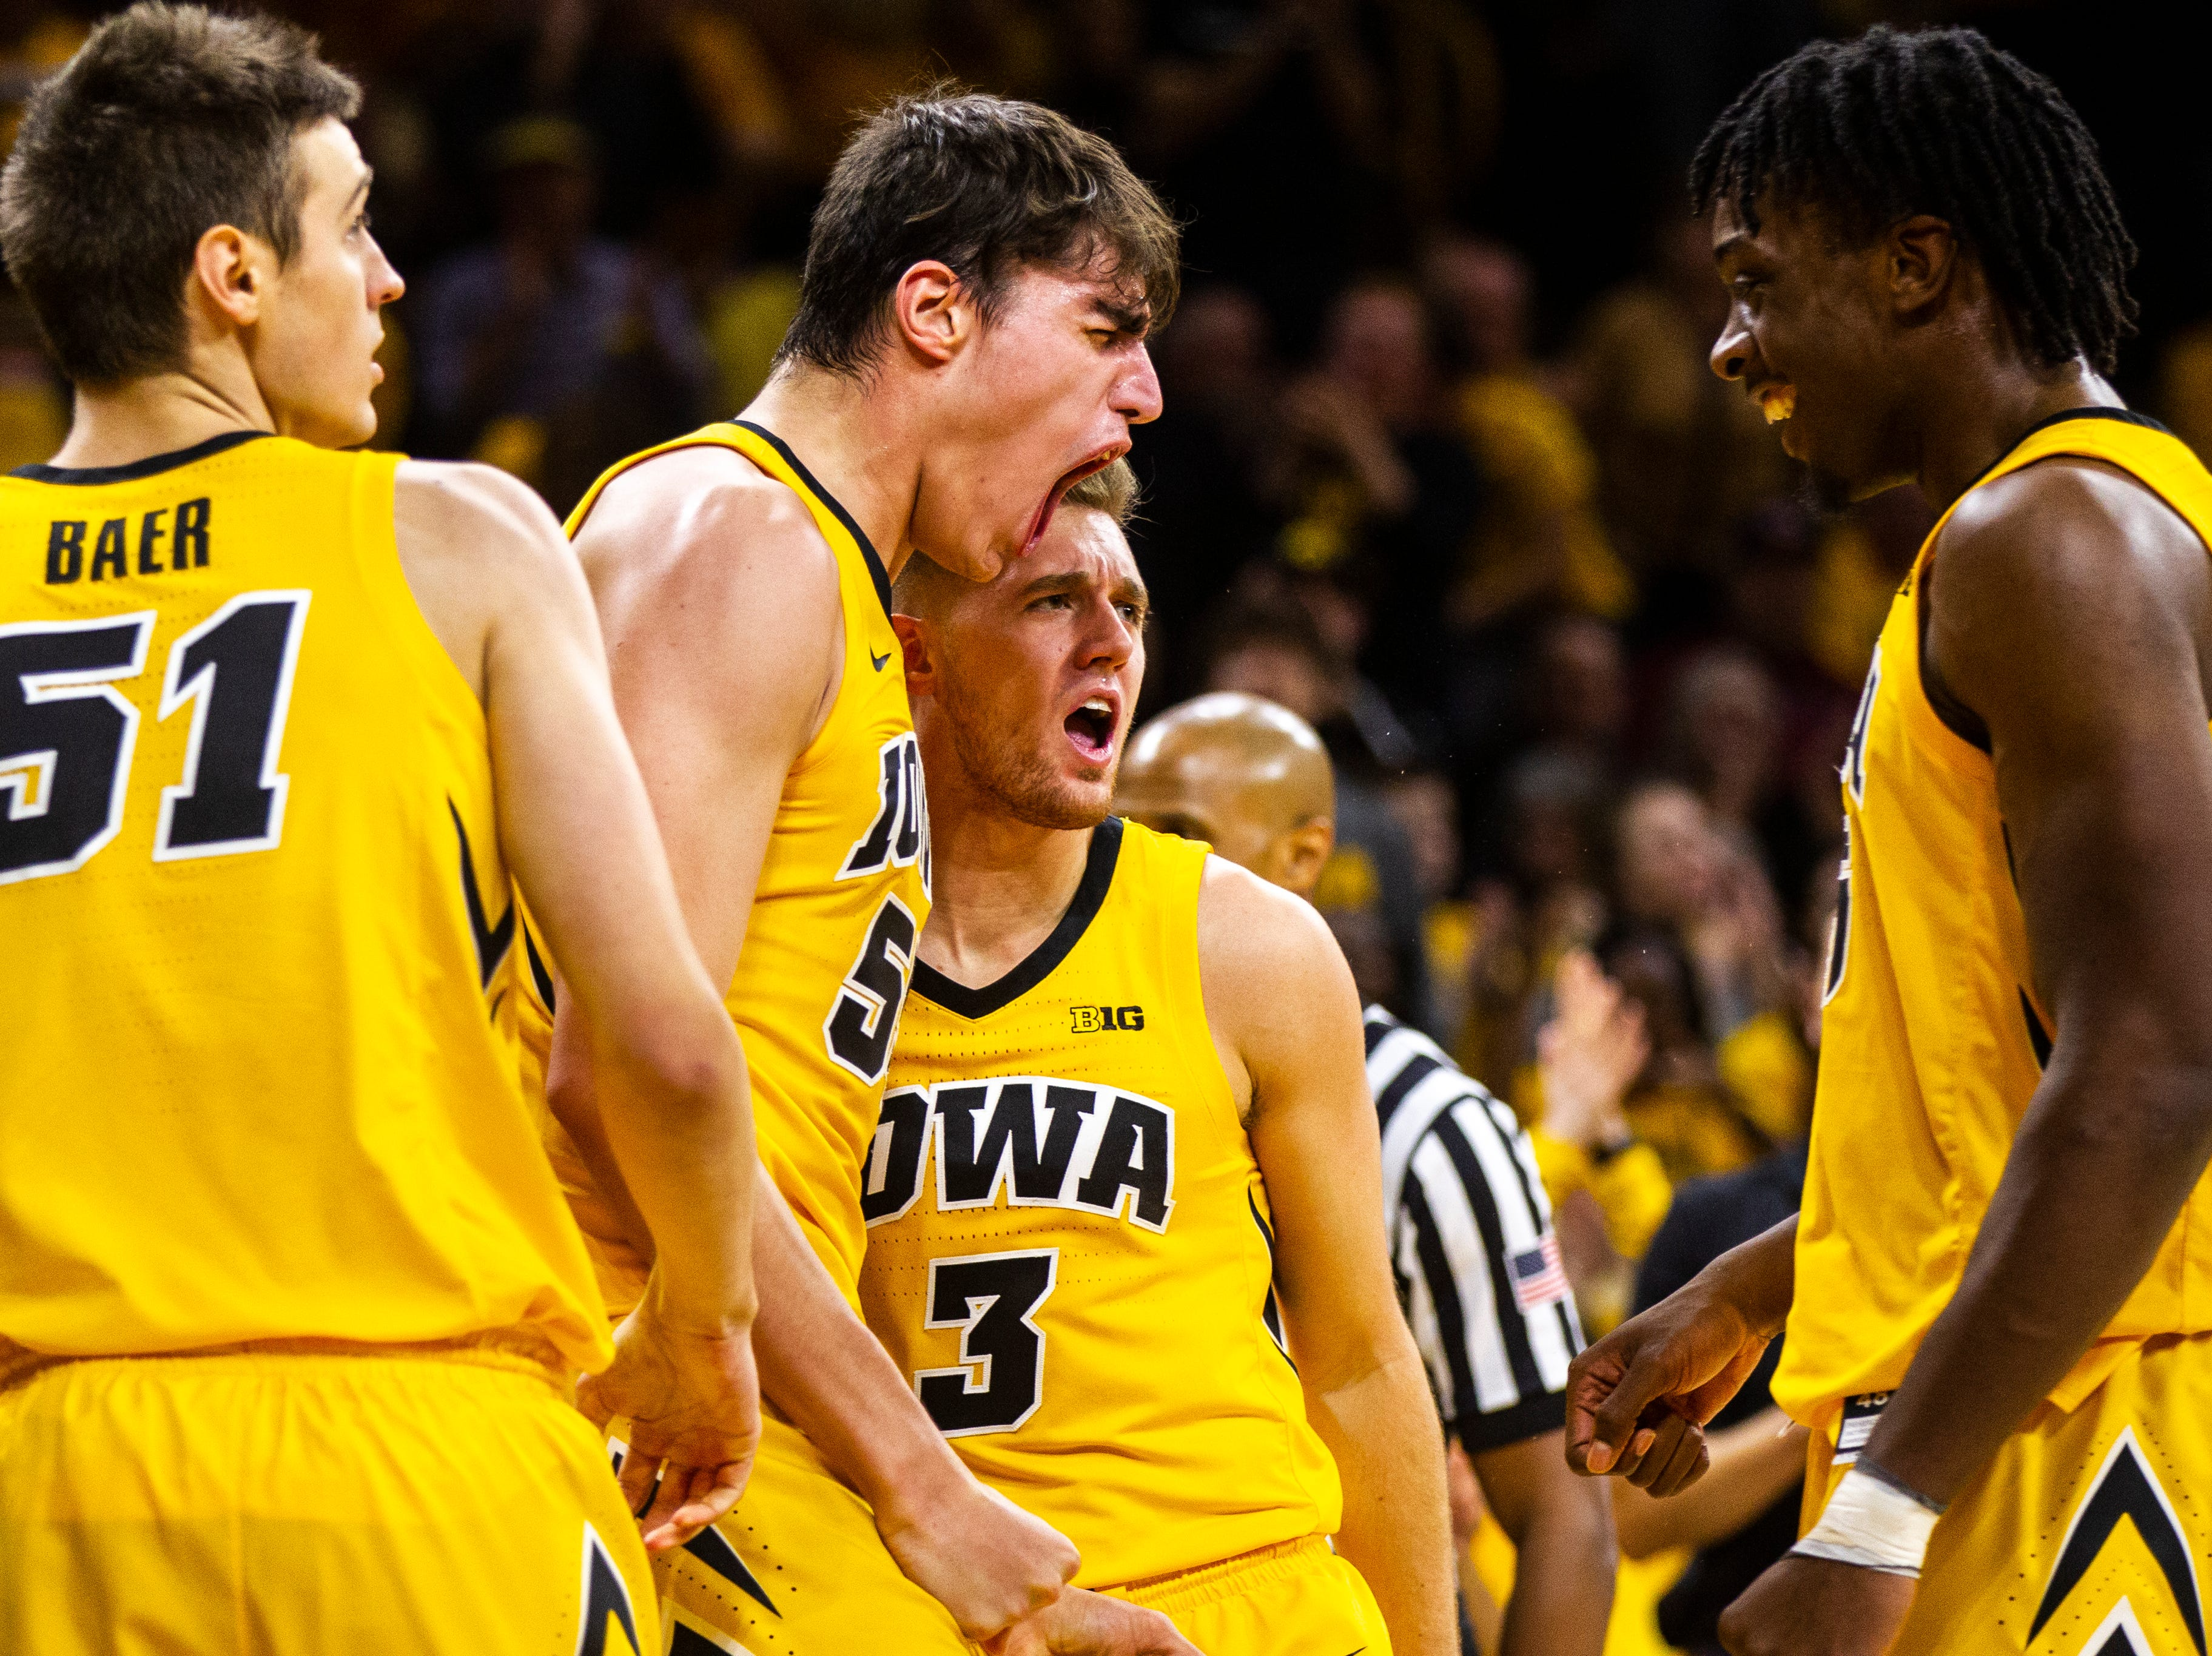 Iowa forward Luka Garza (55) celebrates with Iowa forward Tyler Cook (25) and Iowa guard Jordan Bohannon (3) after drawing a foul during a NCAA Big Ten Conference men's basketball game on Friday, Nov. 30, 2018, at Carver-Hawkeye Arena in Iowa City.